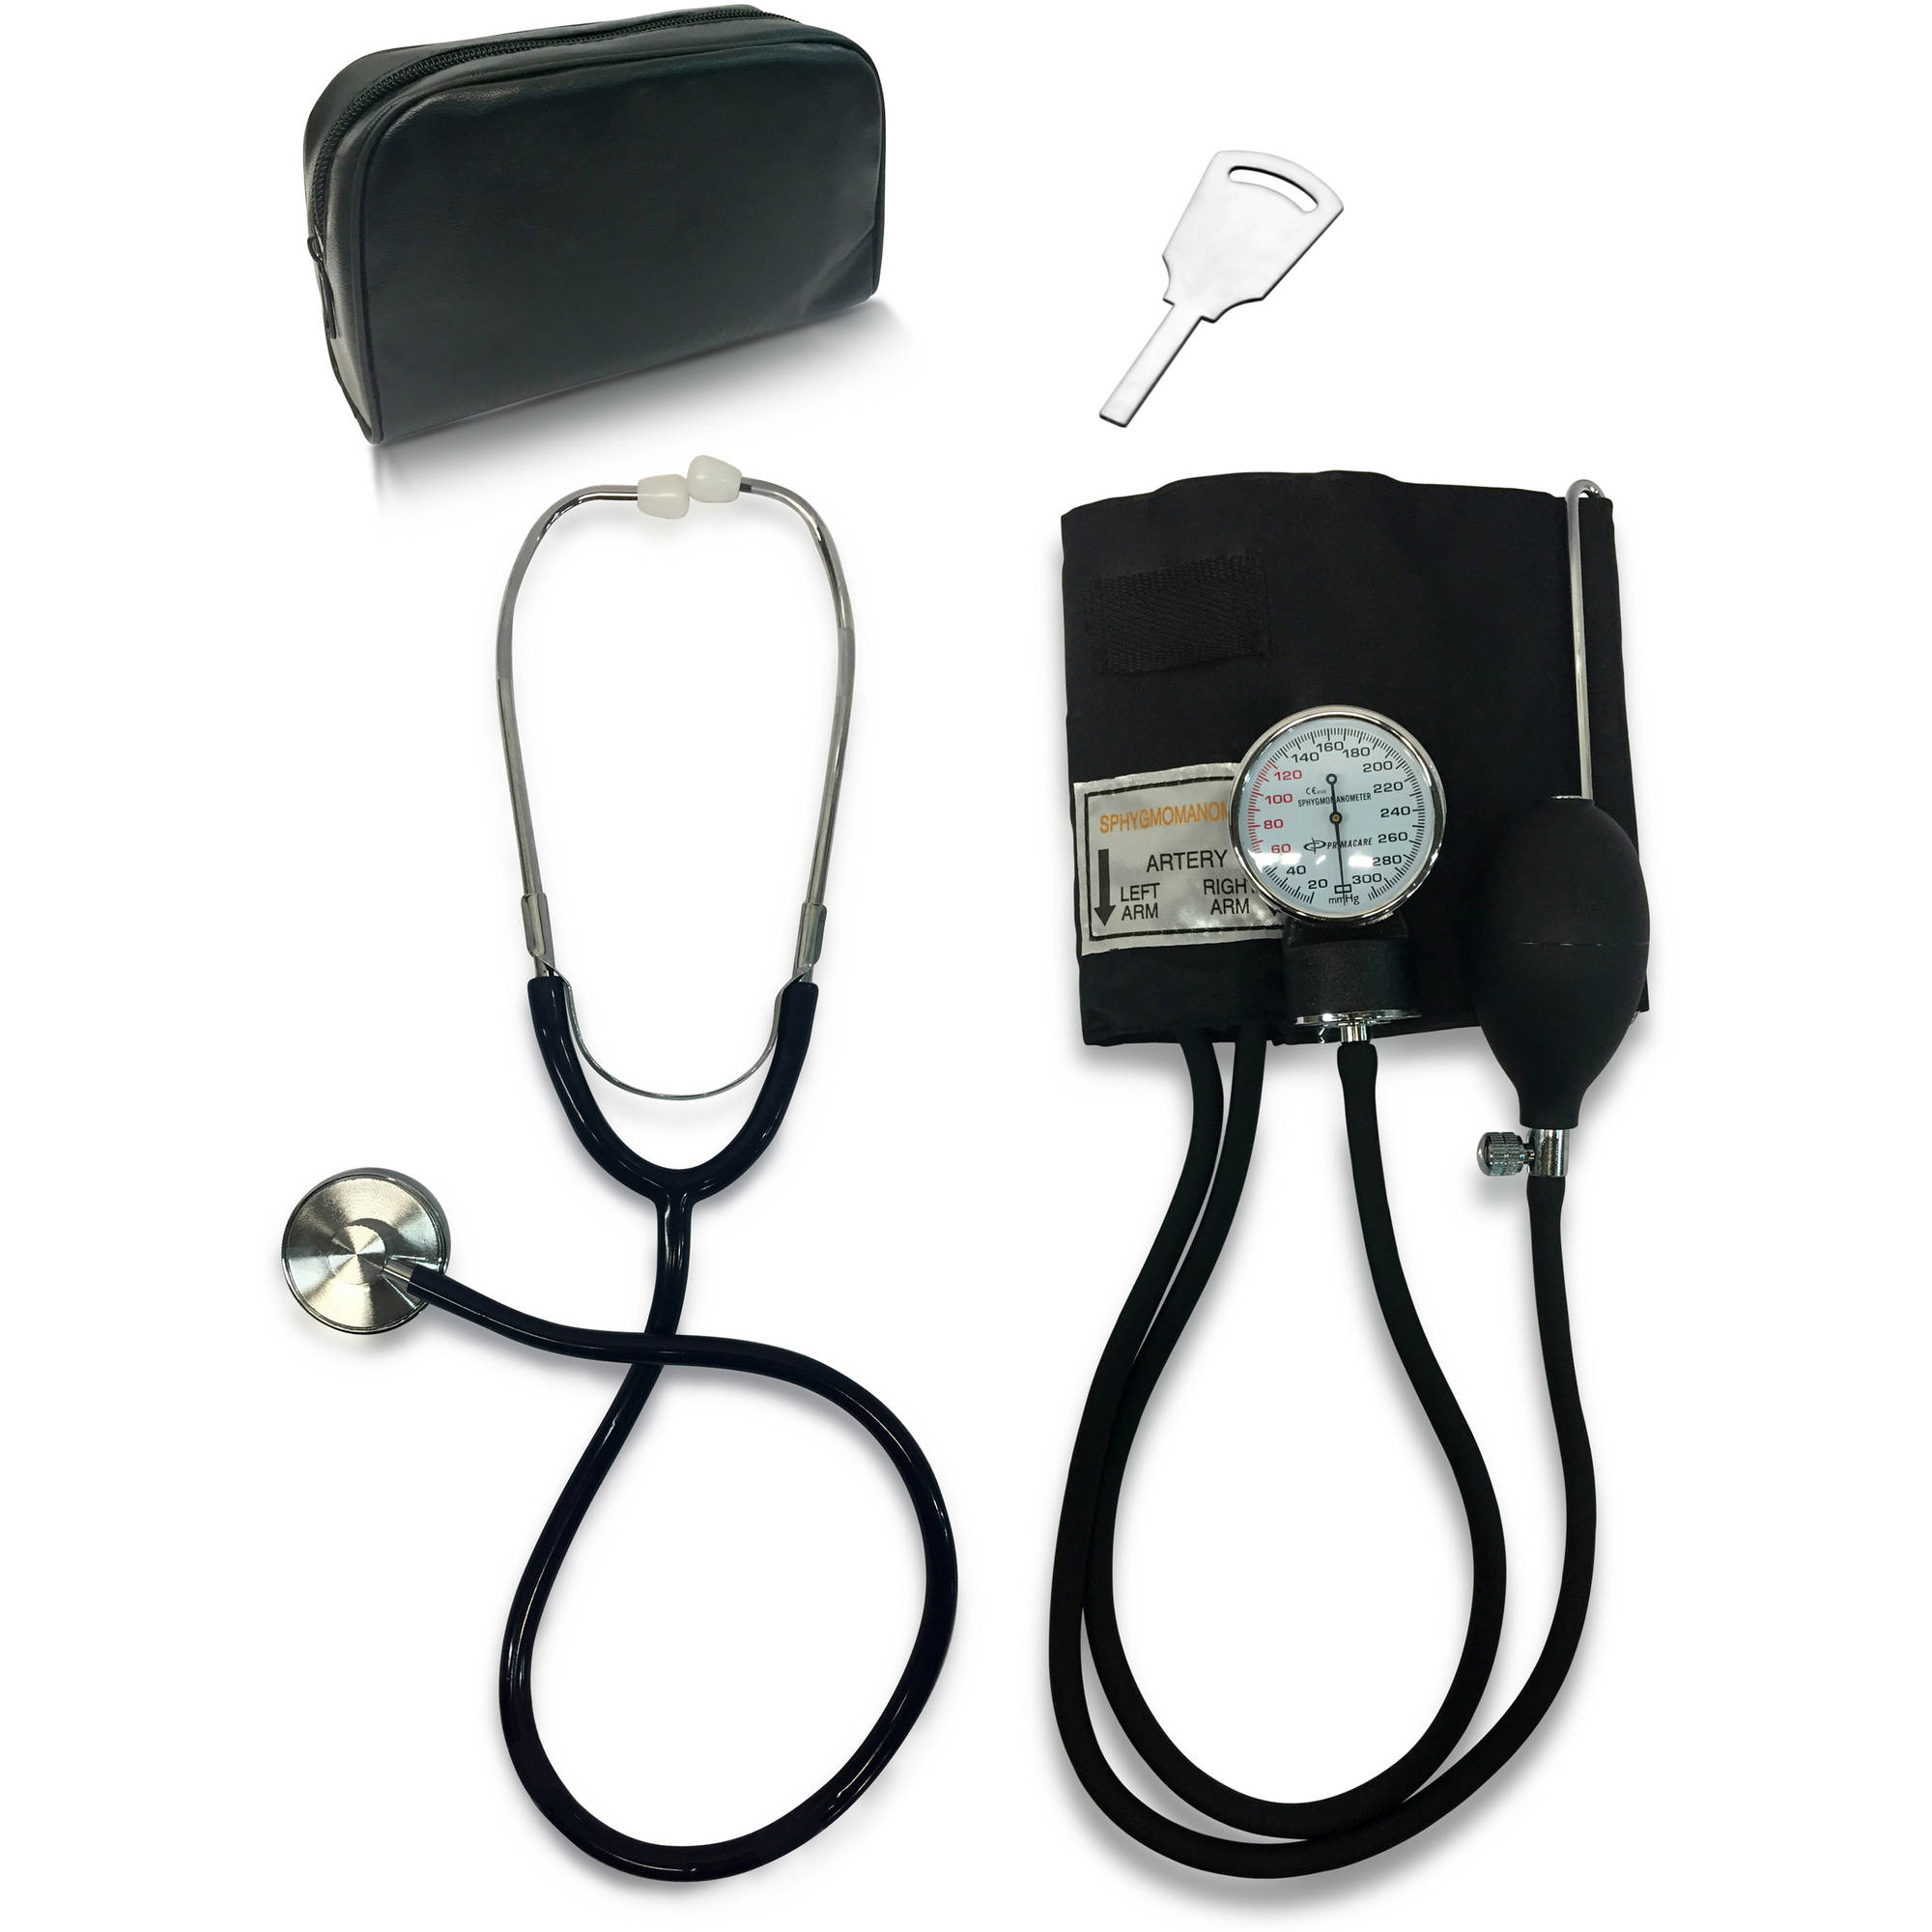 Primacare ET-9106 Classic Series Adult Blood Pressure Kit, Includes Sphygmomanometer with D-Ring Cuff and Stethoscope